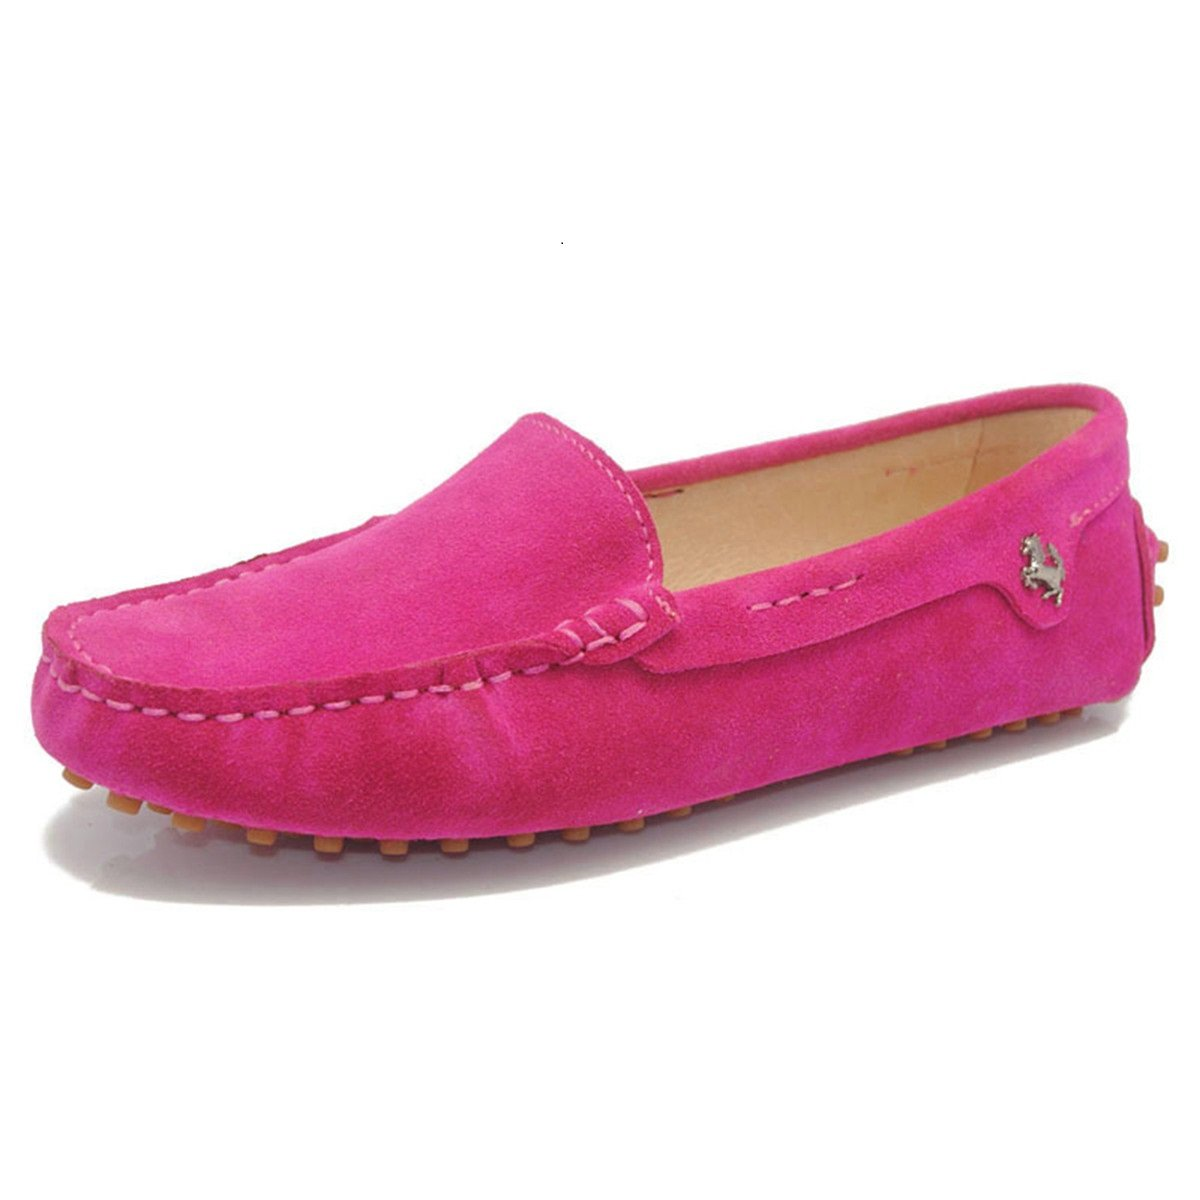 Goeao Women Casual Comfortable Basic Suede Leather Driving Moccasins Flats Slip-ONS Boat Loafers (9 B(M) US, Rose)